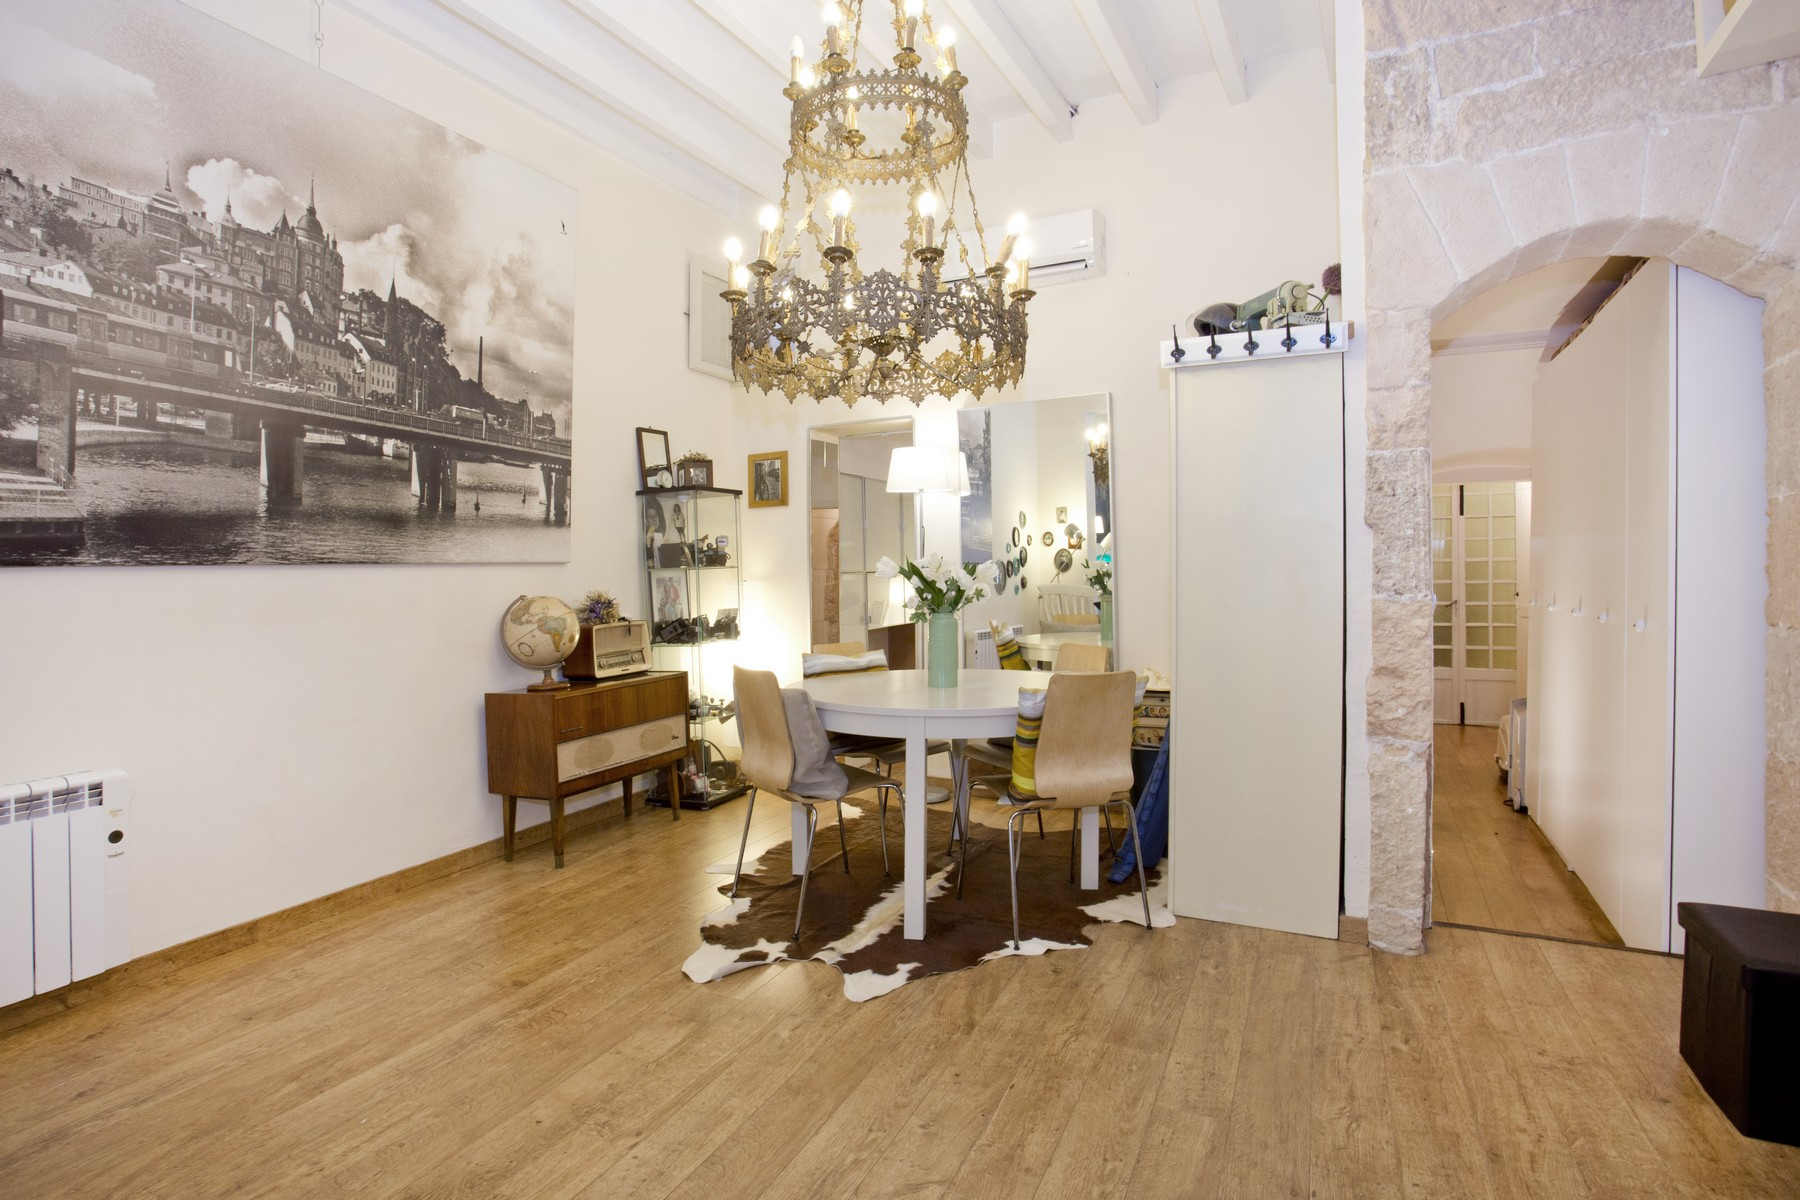 Single Family Home for Sale at Charming apartment in Old Town of Palma Palma, Mallorca, 07012 Spain